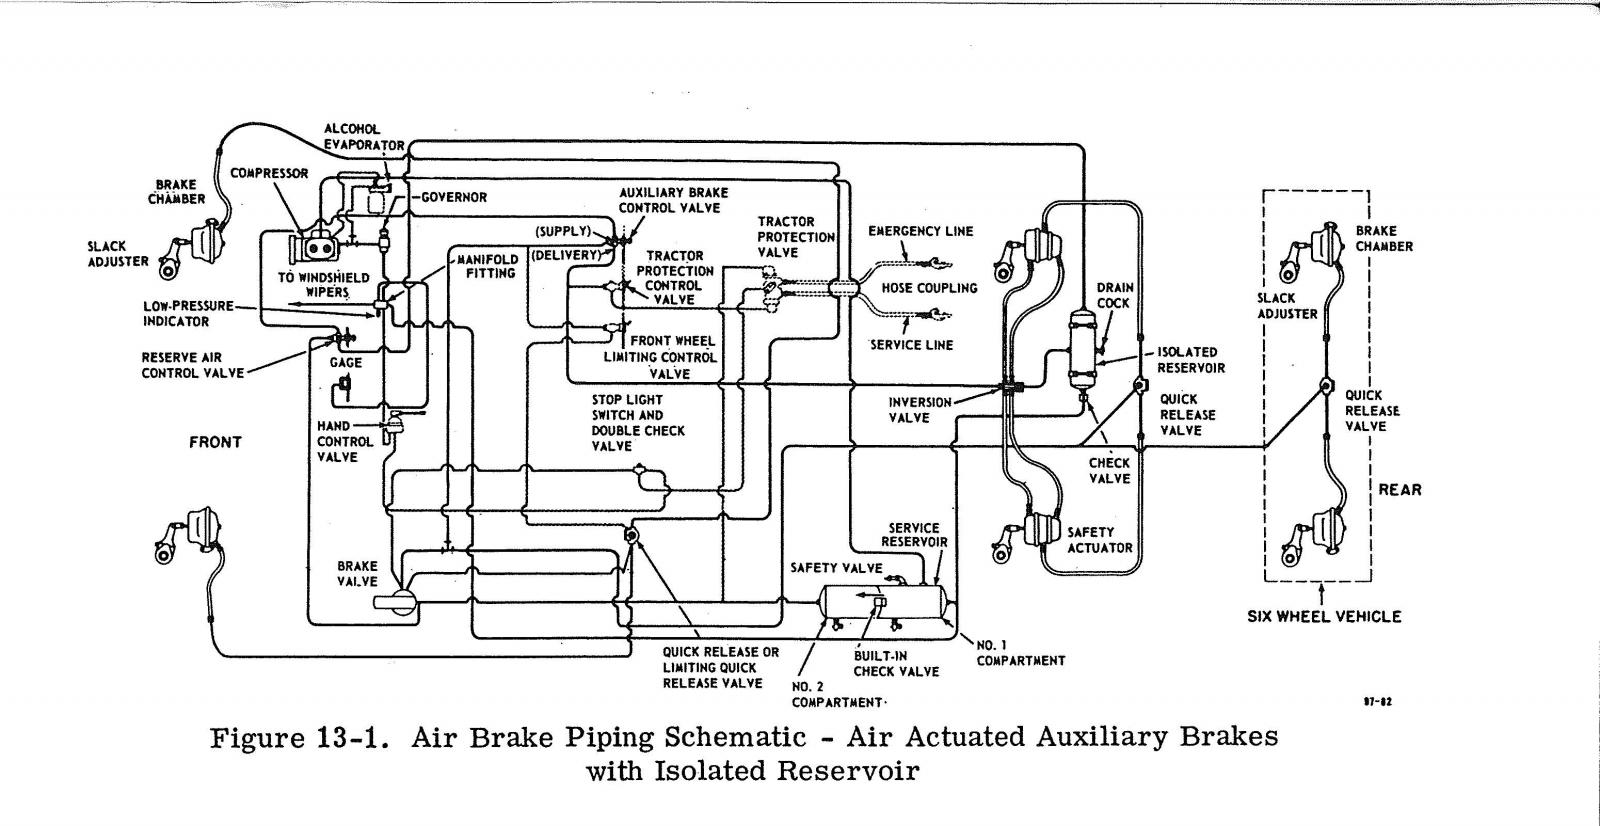 air brake schematic diagram